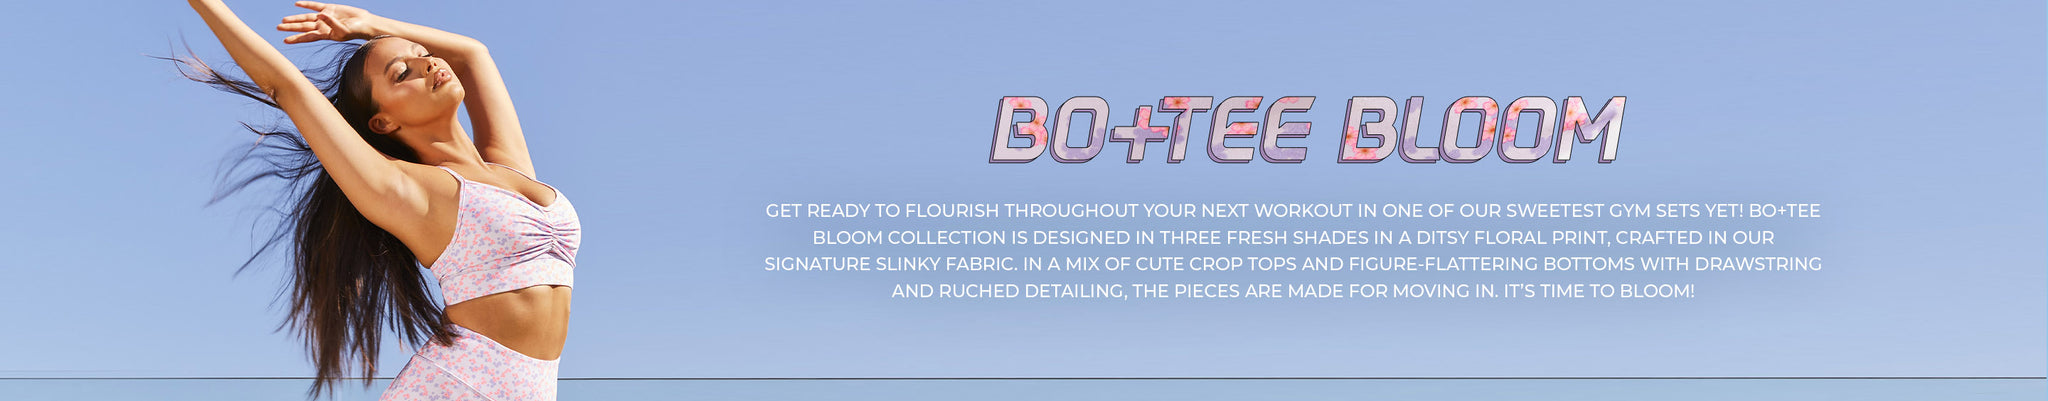 Bo+Tee Bloom Collection banner